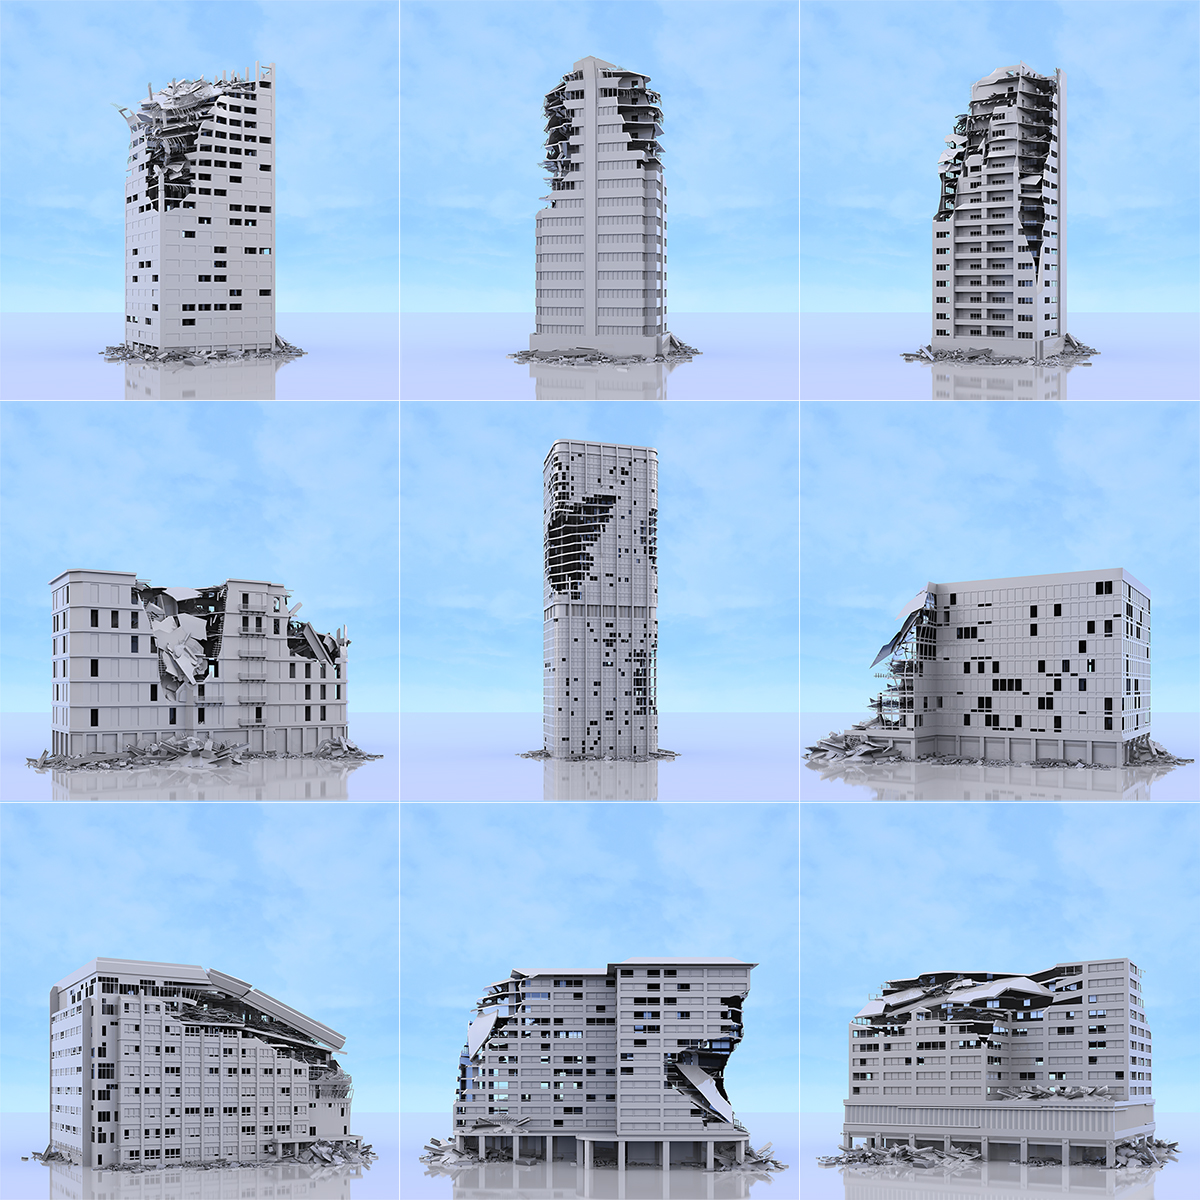 This was HomoSapiens War Affected Buildings 000 1 - 2019 - This was HomoSapiens. War-Affected Buildings